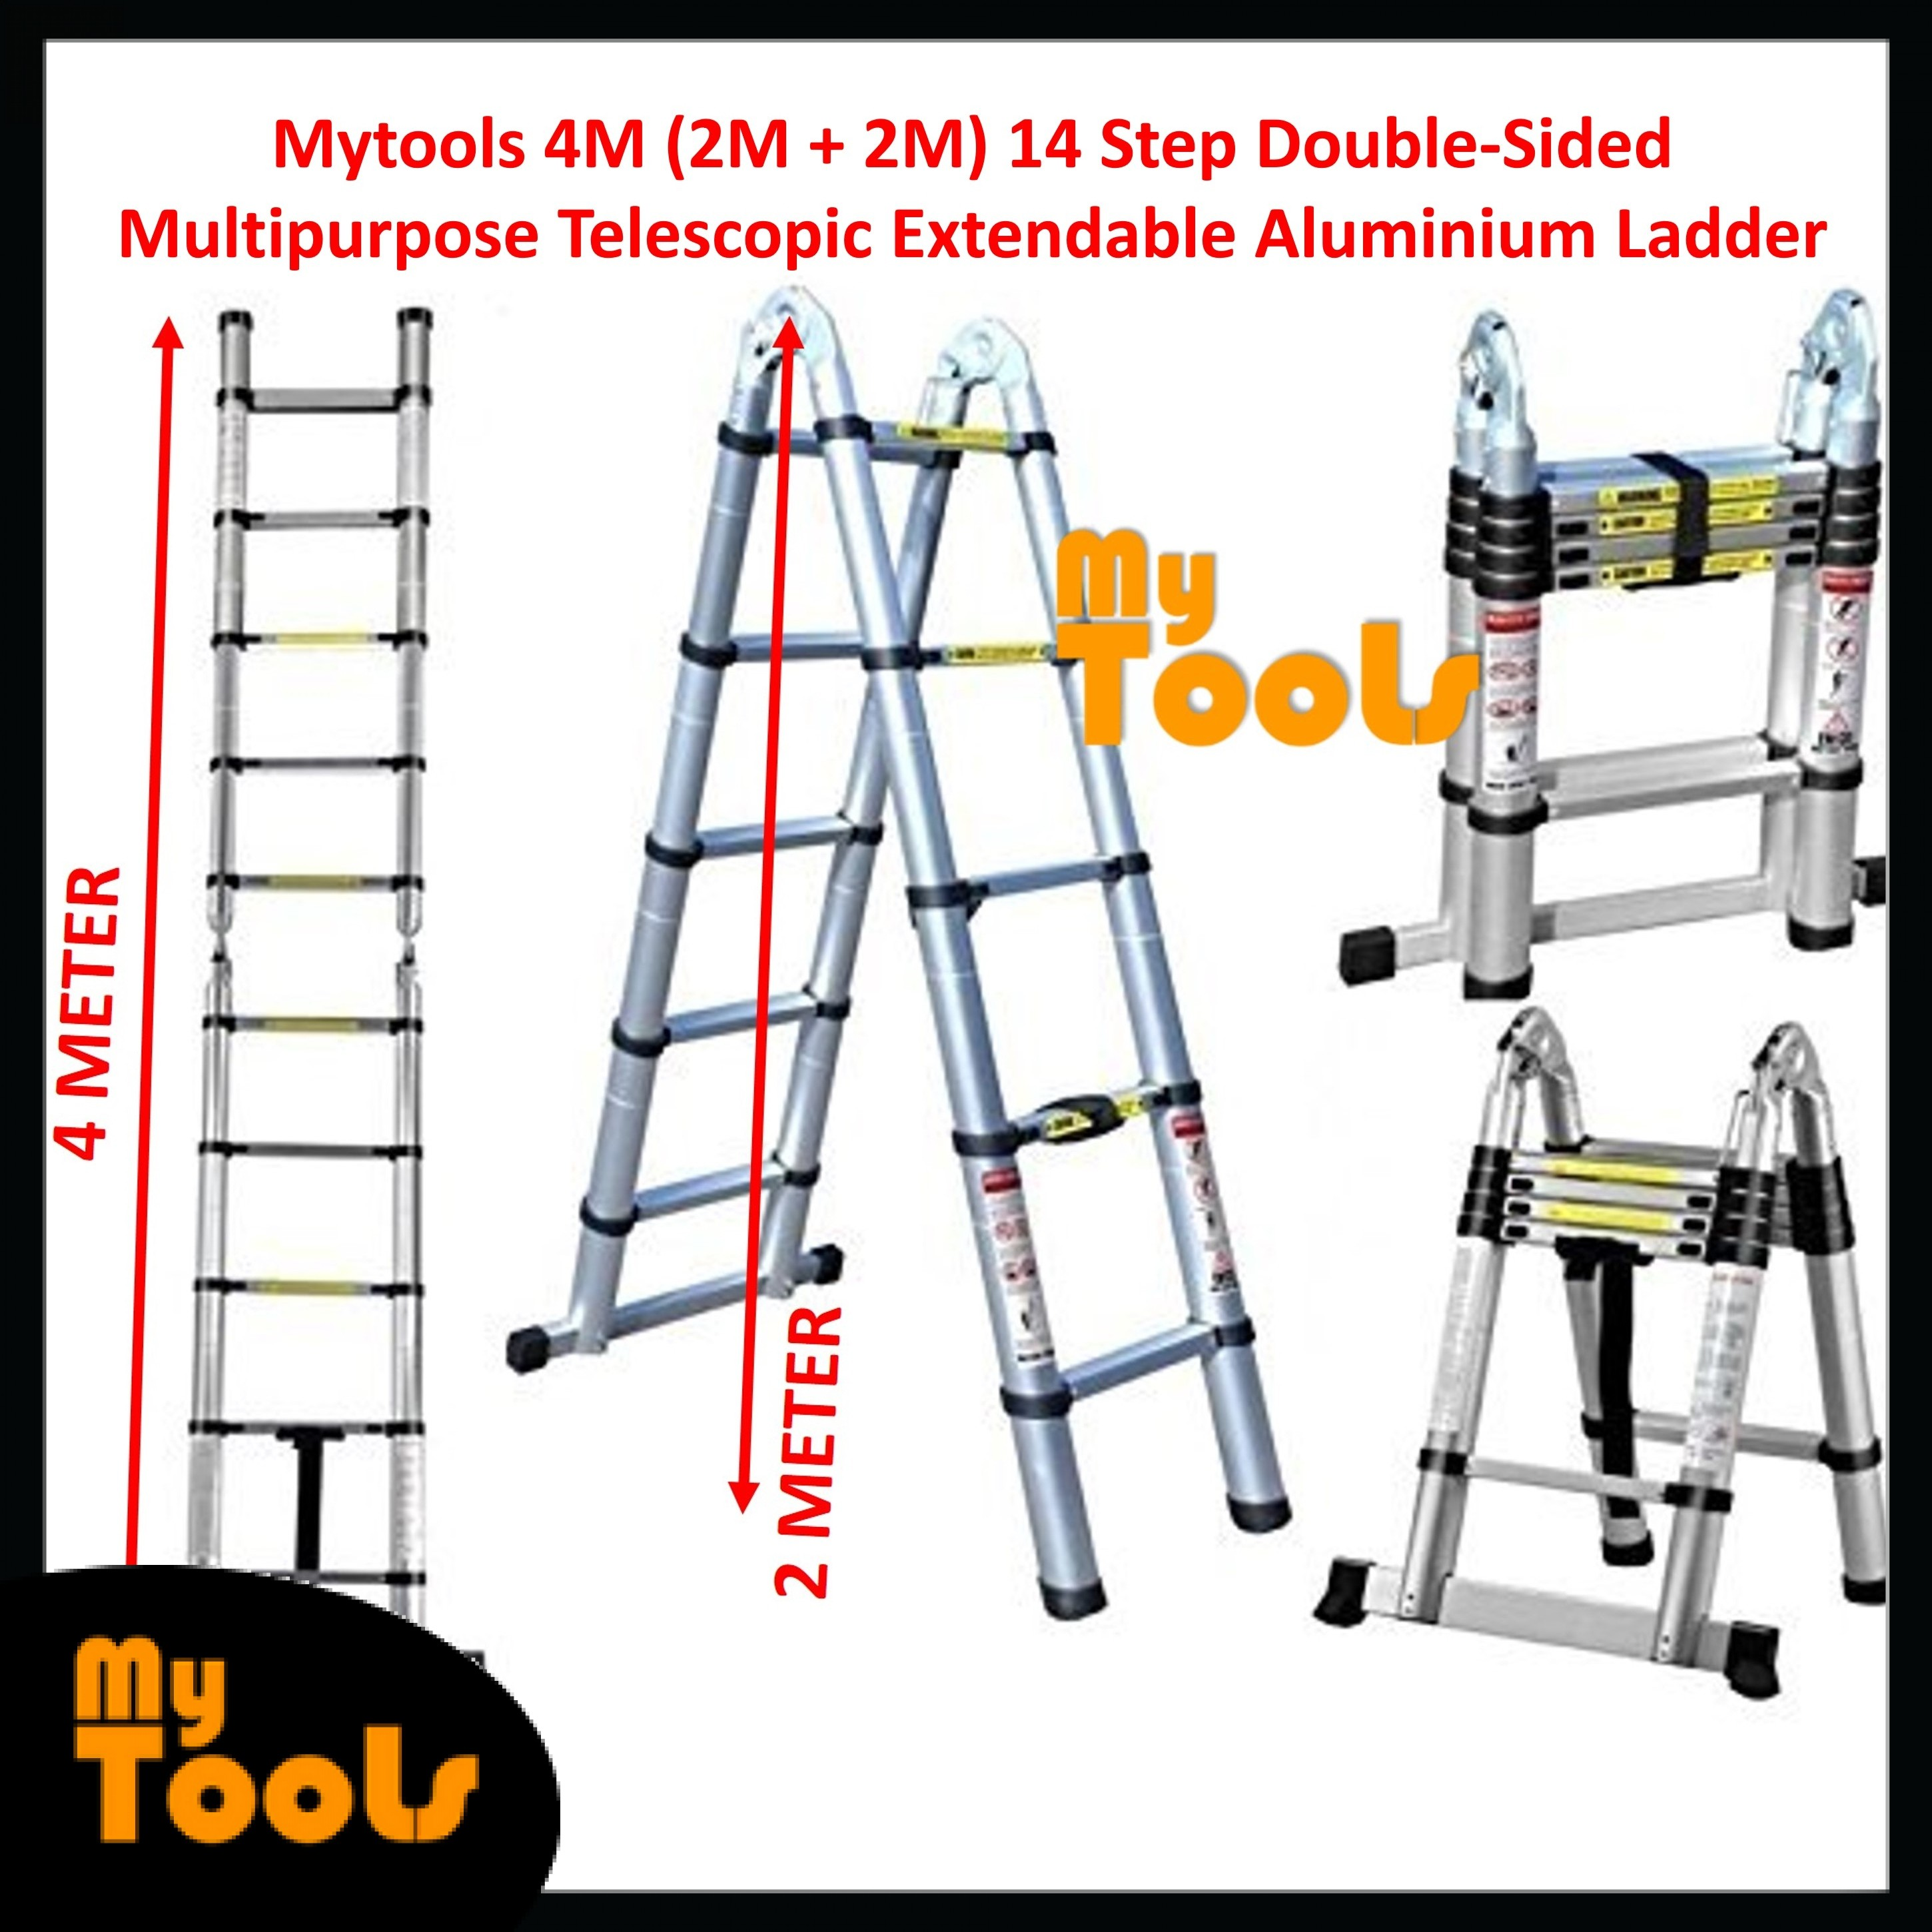 Mytools 4M (2M + 2M) Double-Sided Multipurpose Telescopic Extendable Aluminium Ladder